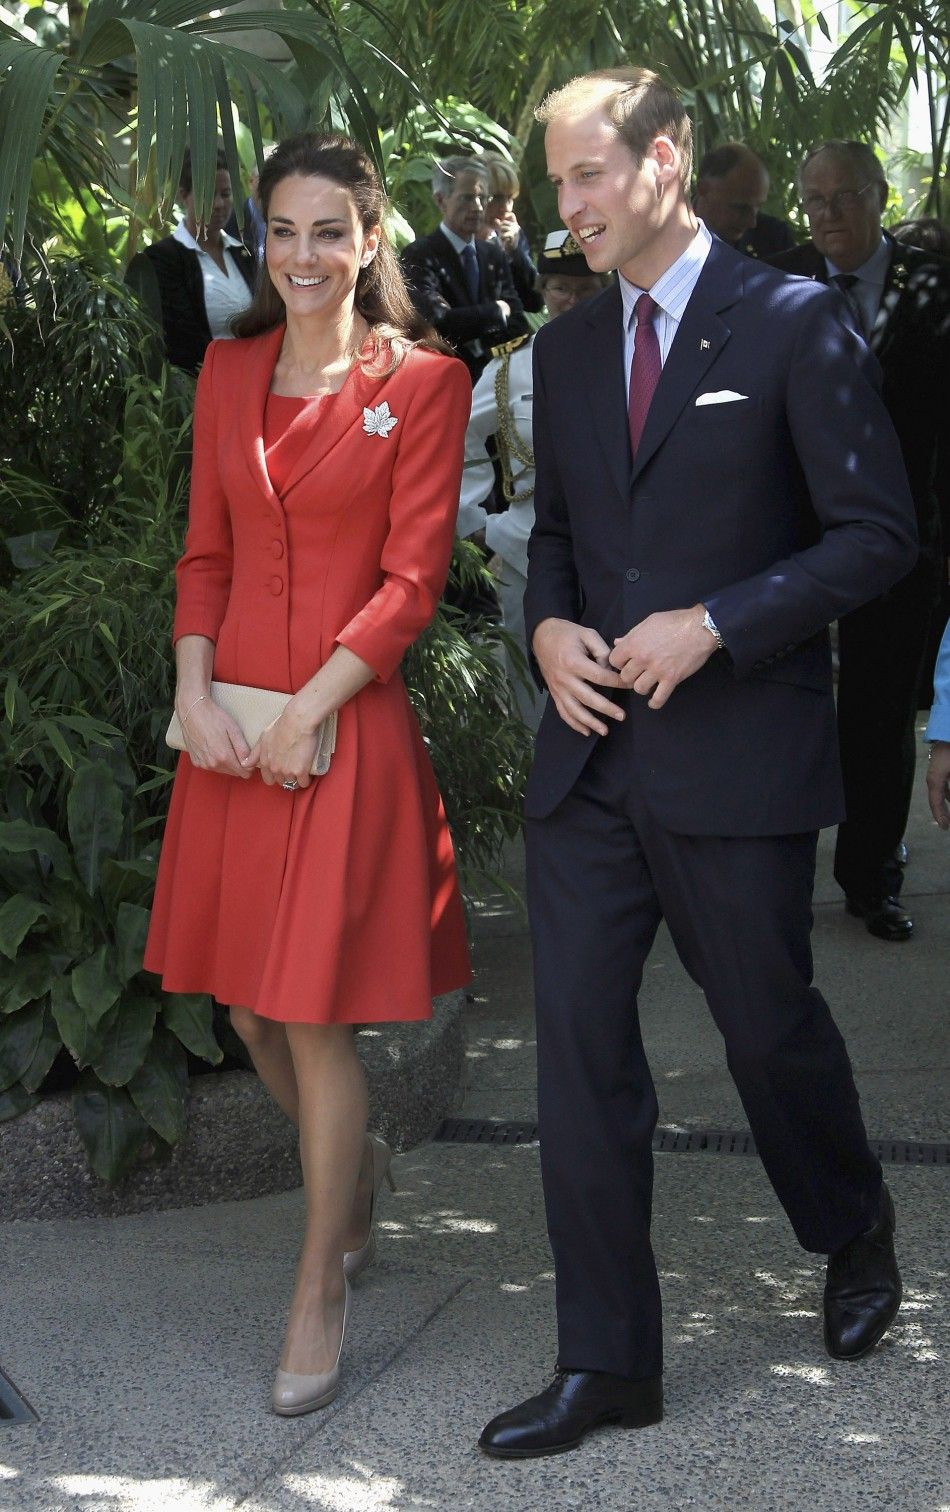 Catherine, Duchess of Cambridge and Prince William, Duke of Cambridge, attend a reception at Calgary Zoo